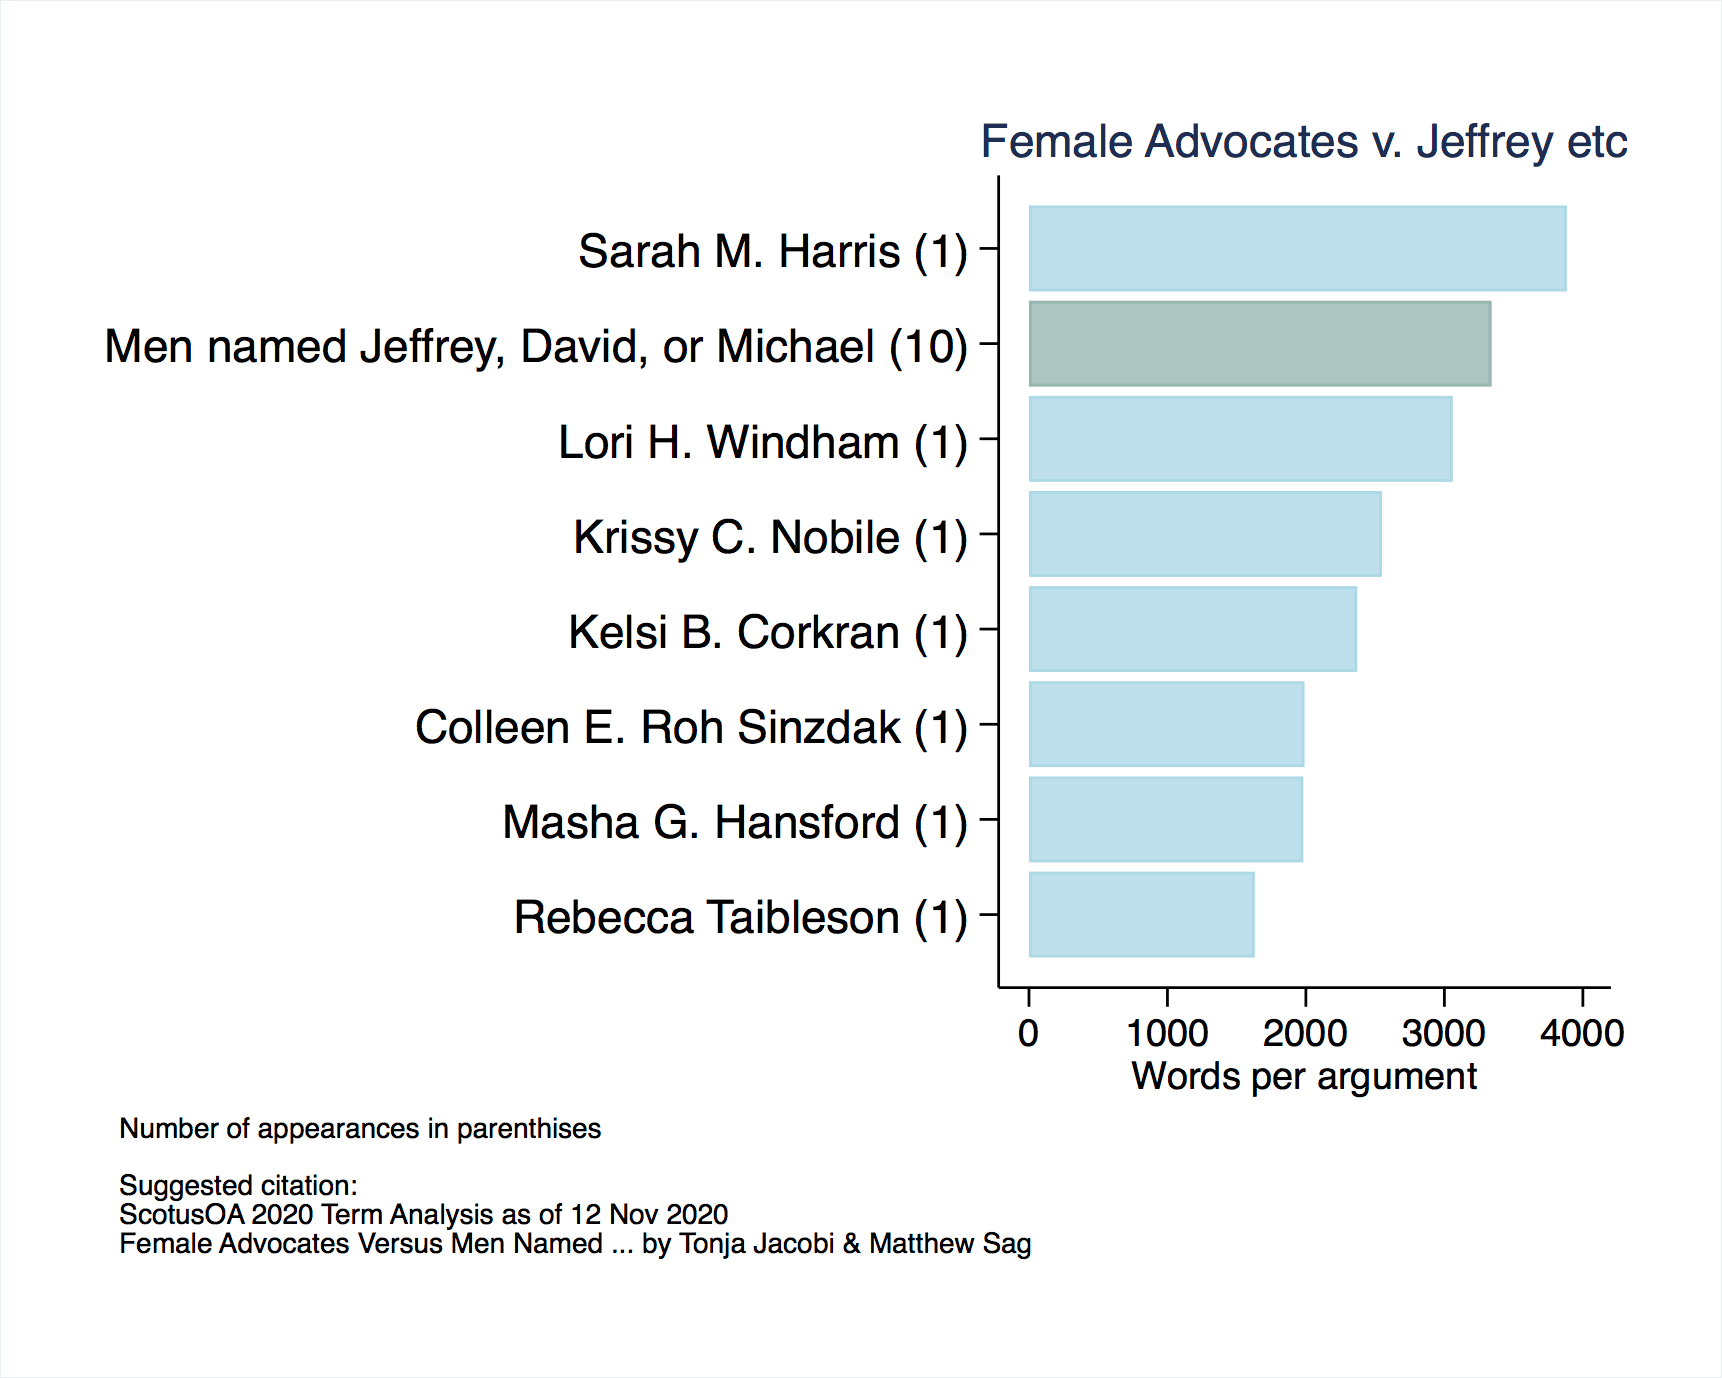 Summary Stats For Supreme Court Oral Argument To Date